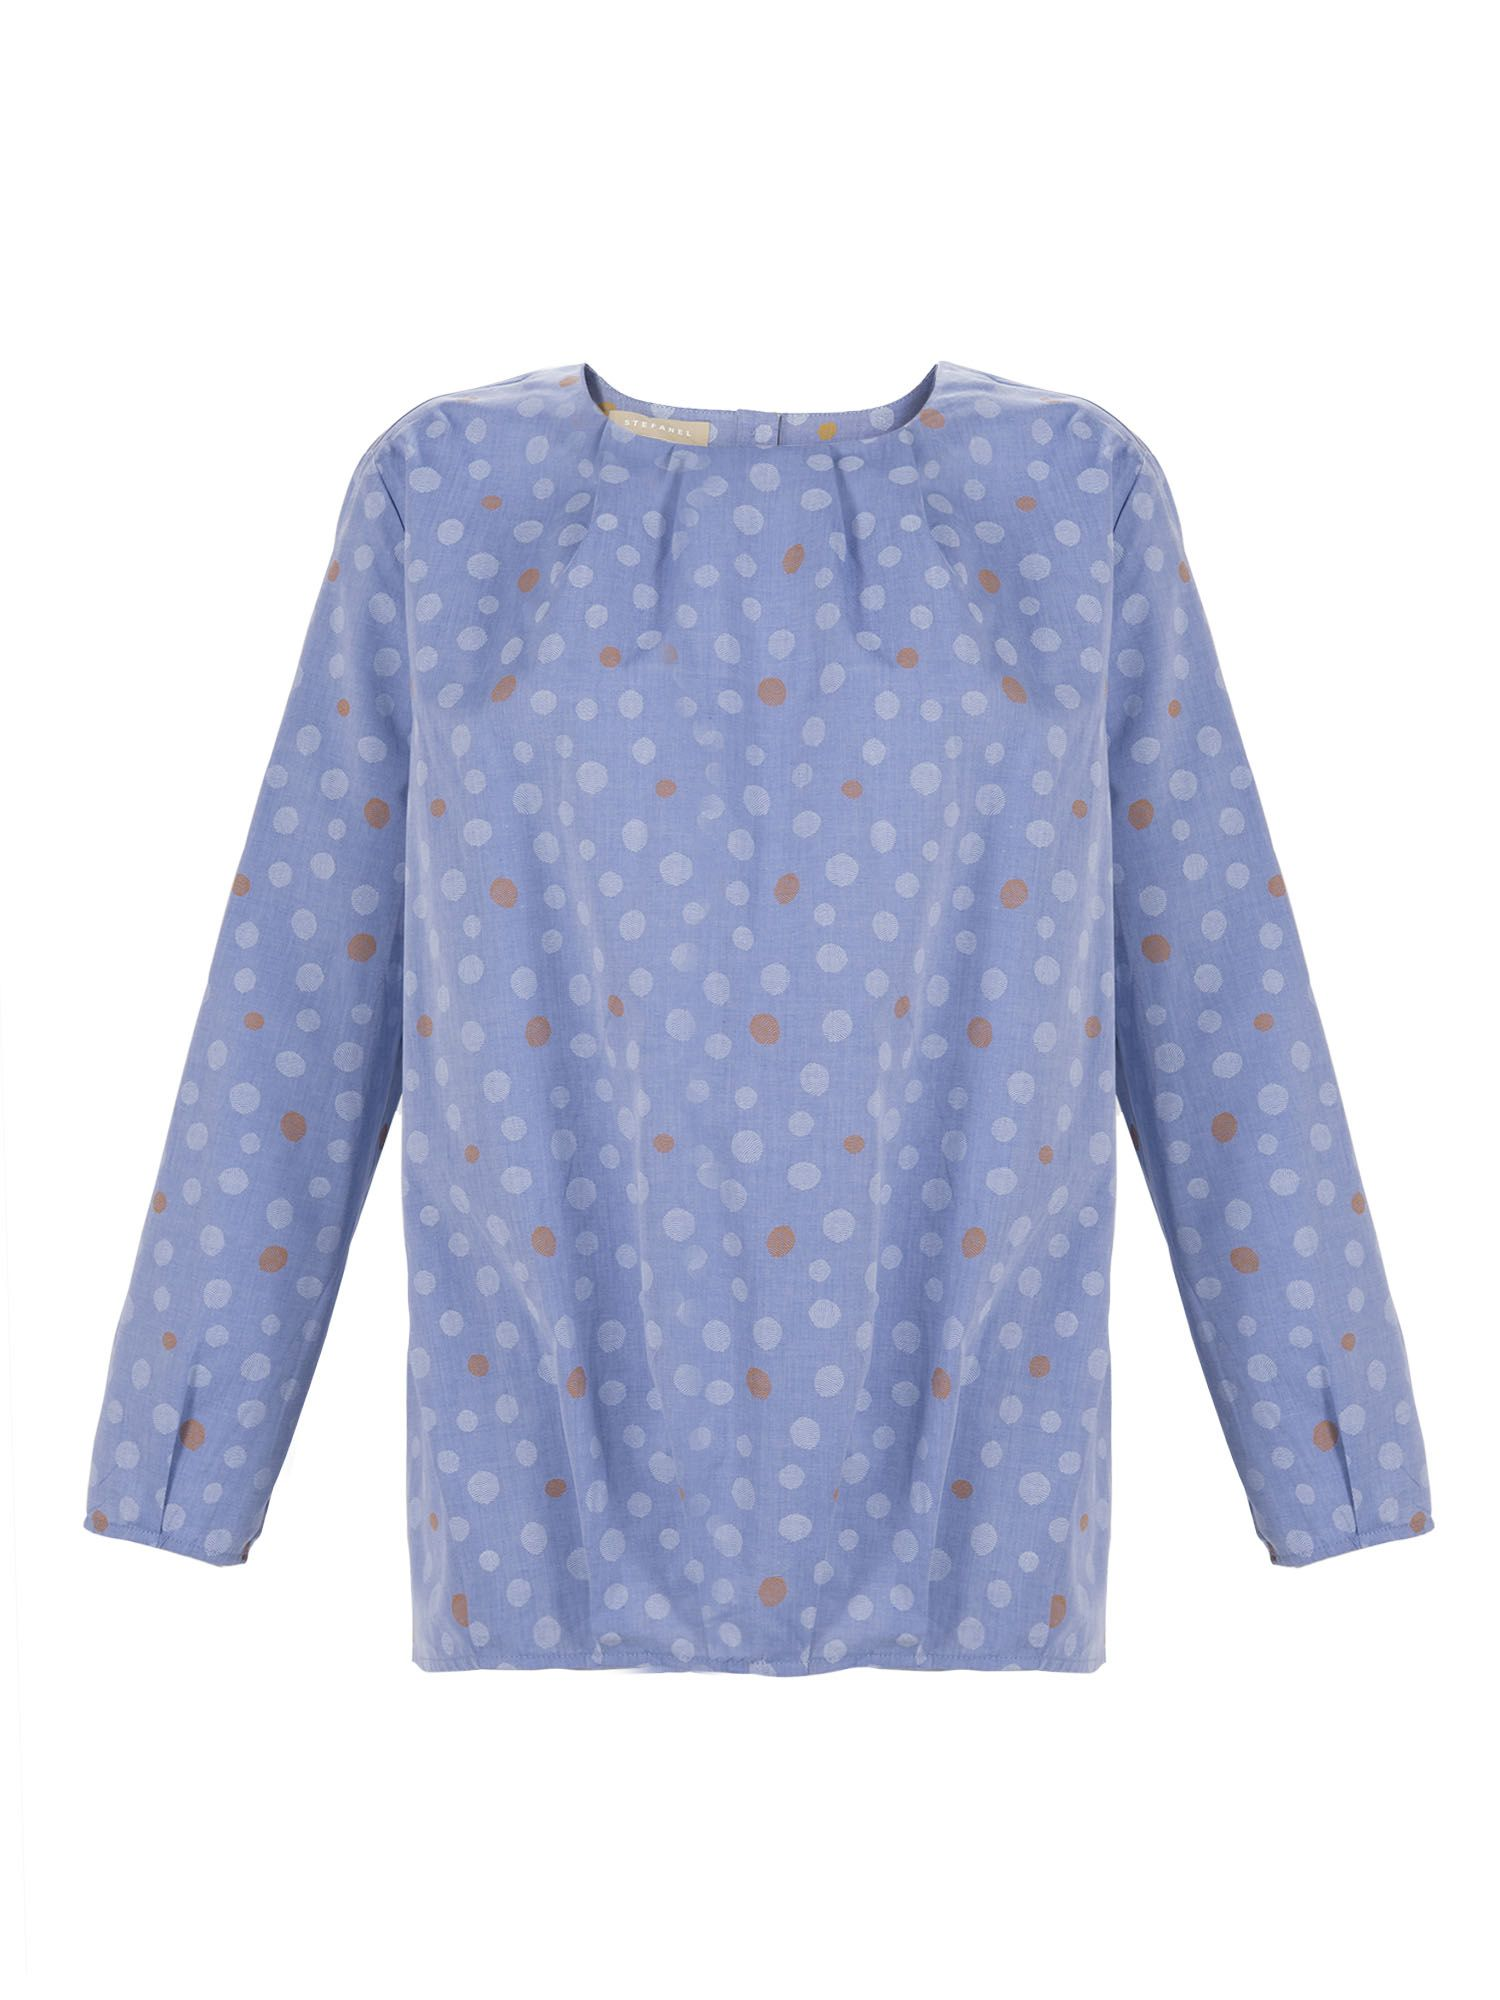 Stefanel Polka Dot Blouse, Light Blue